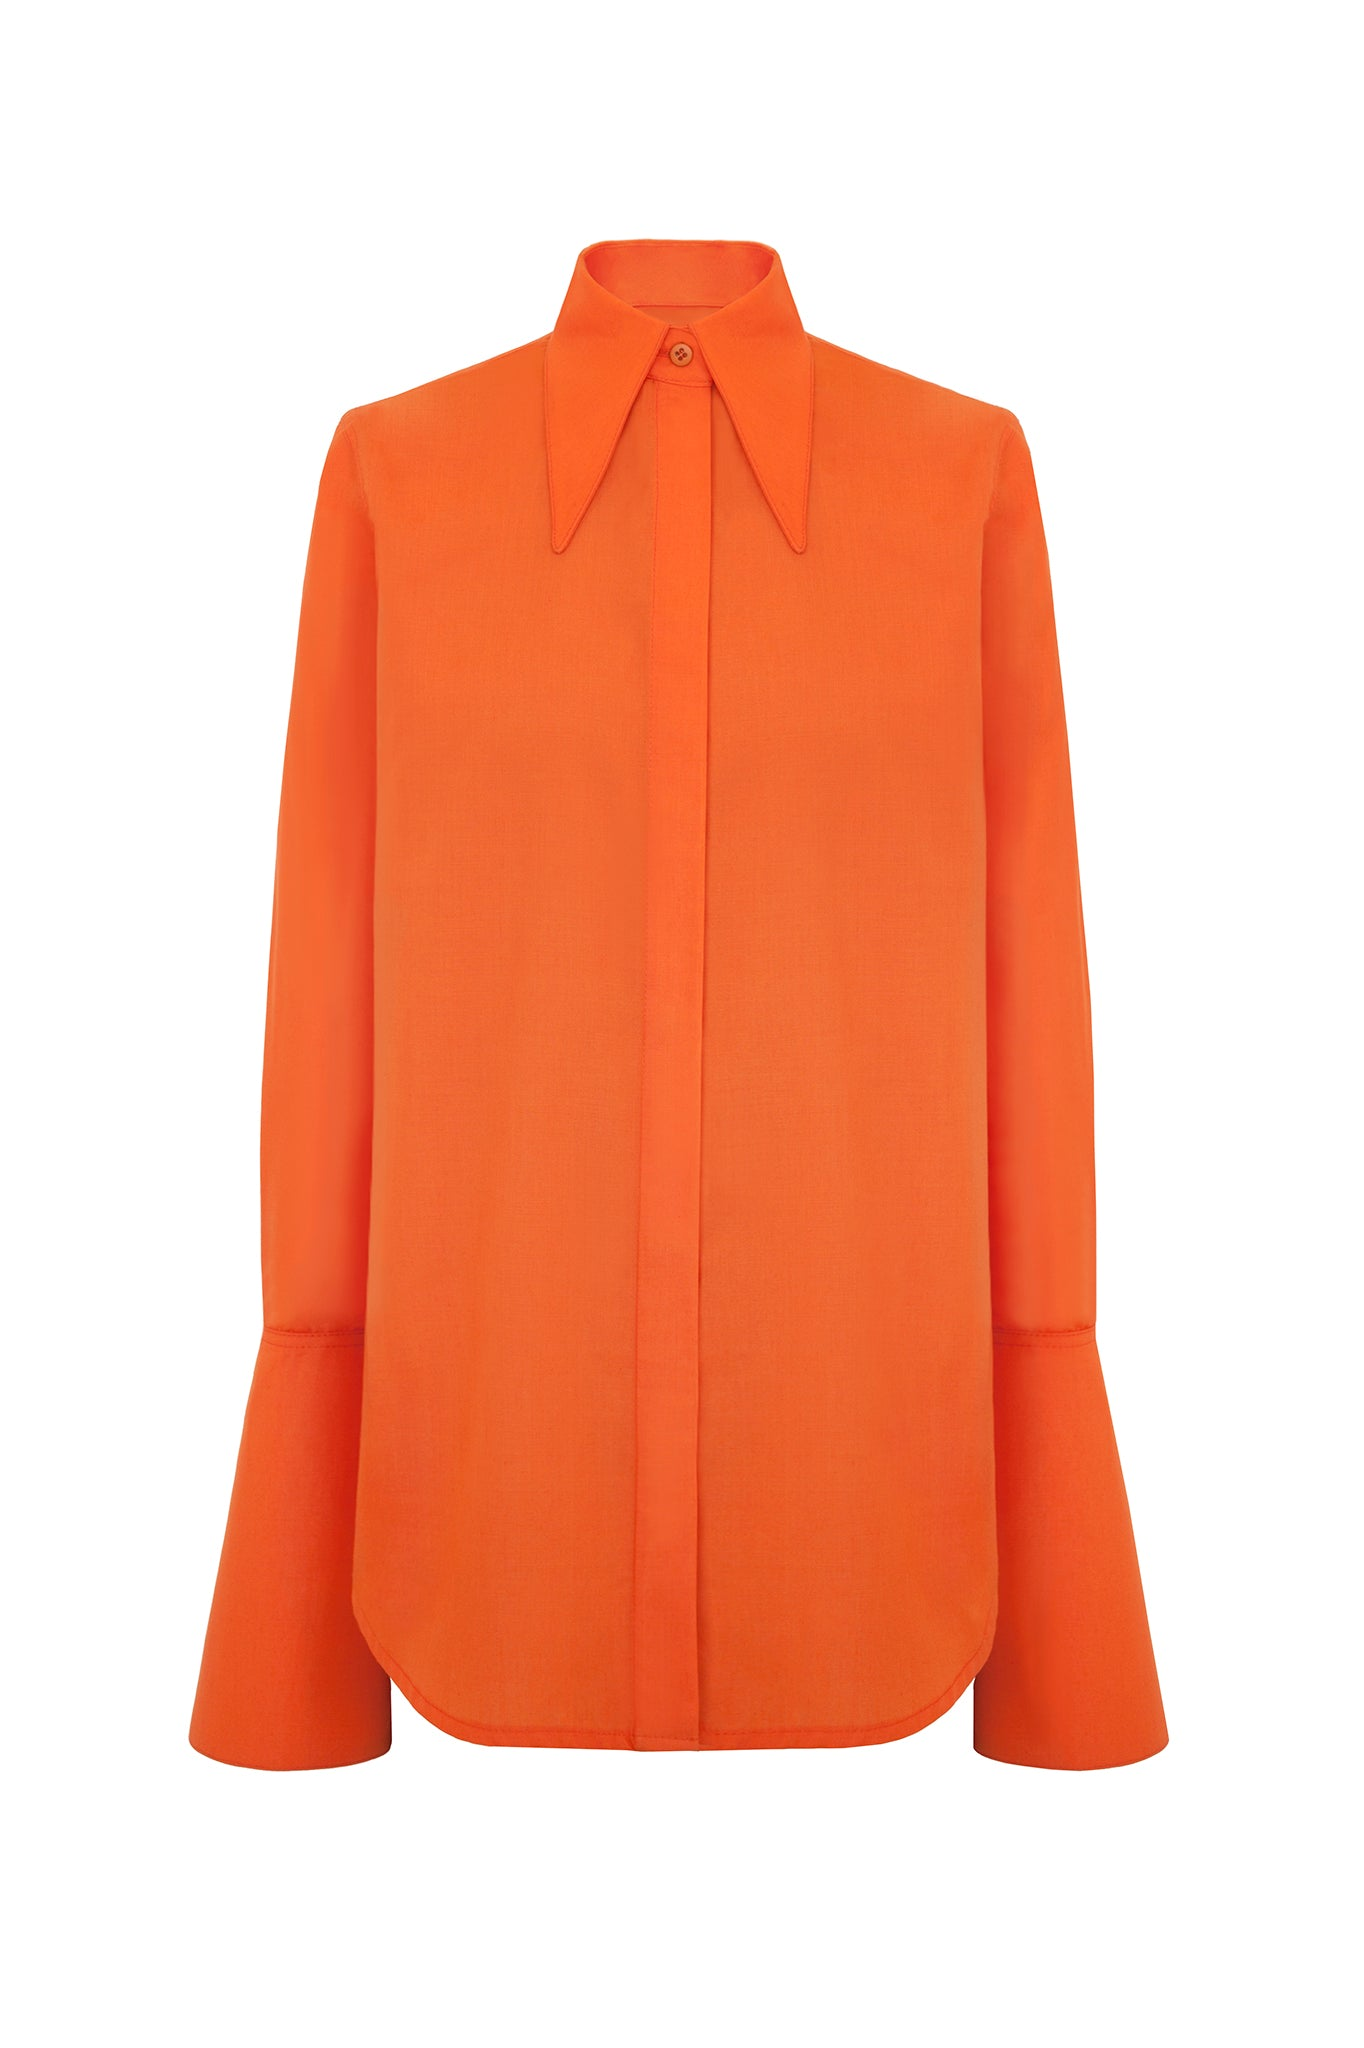 A modern twist on a classic, this orange shirt features an unusual elongated collar and long, conical and graphic cuffs. First worn on the AW17 catwalk.